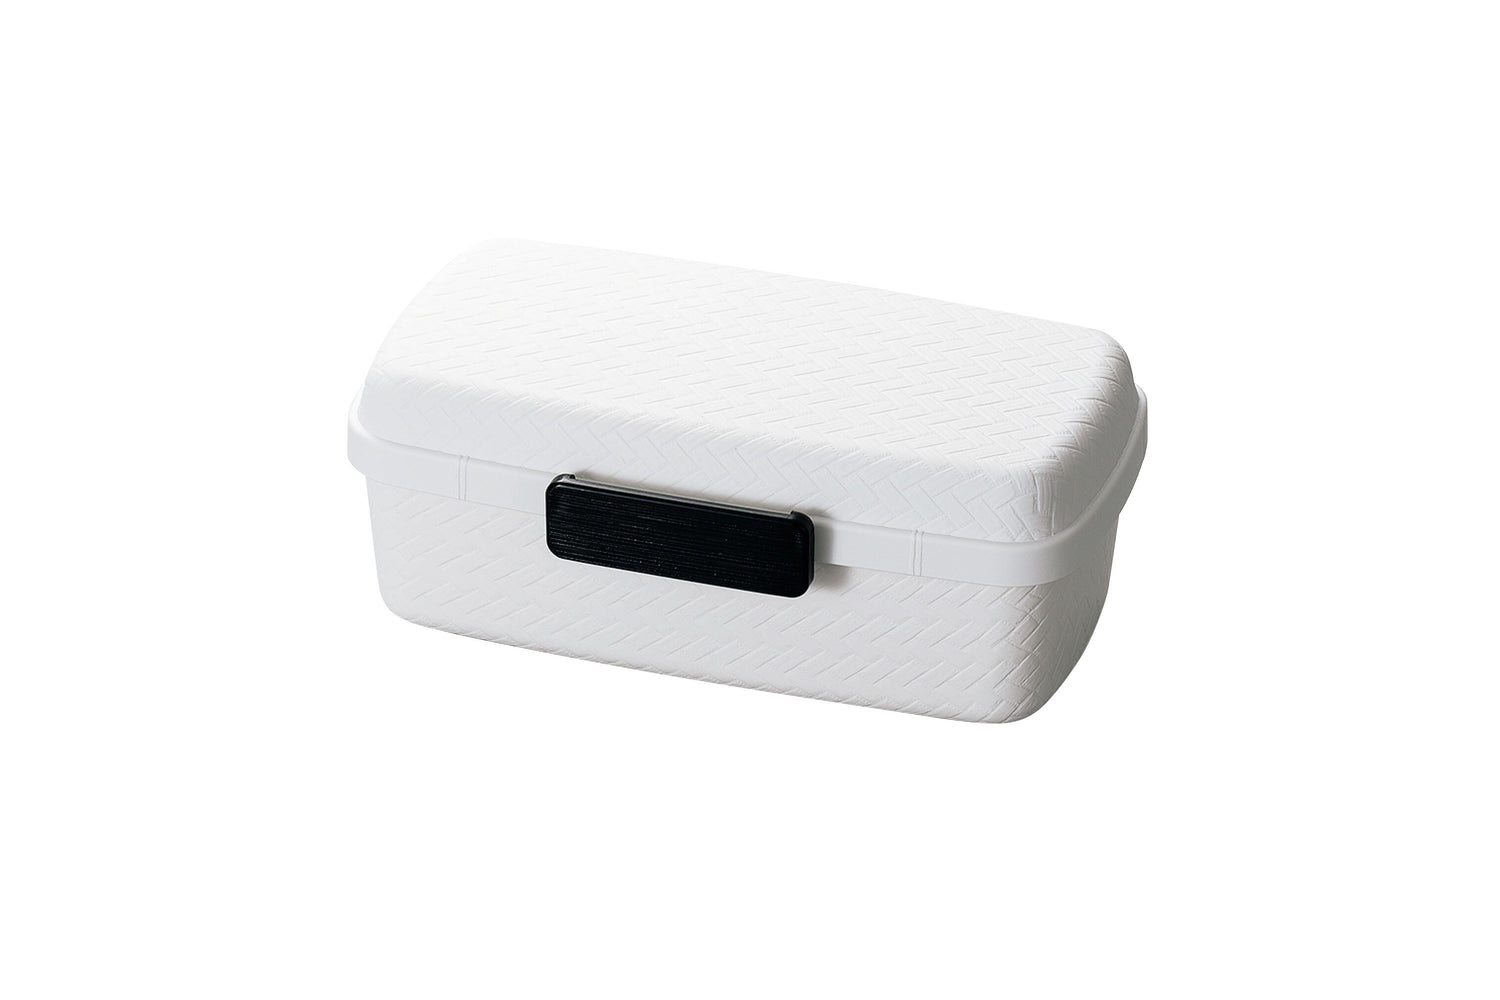 Nuri Ajiro Side Lock Bento Box Large | White by Hakoya - Bento&co Japanese Bento Lunch Boxes and Kitchenware Specialists